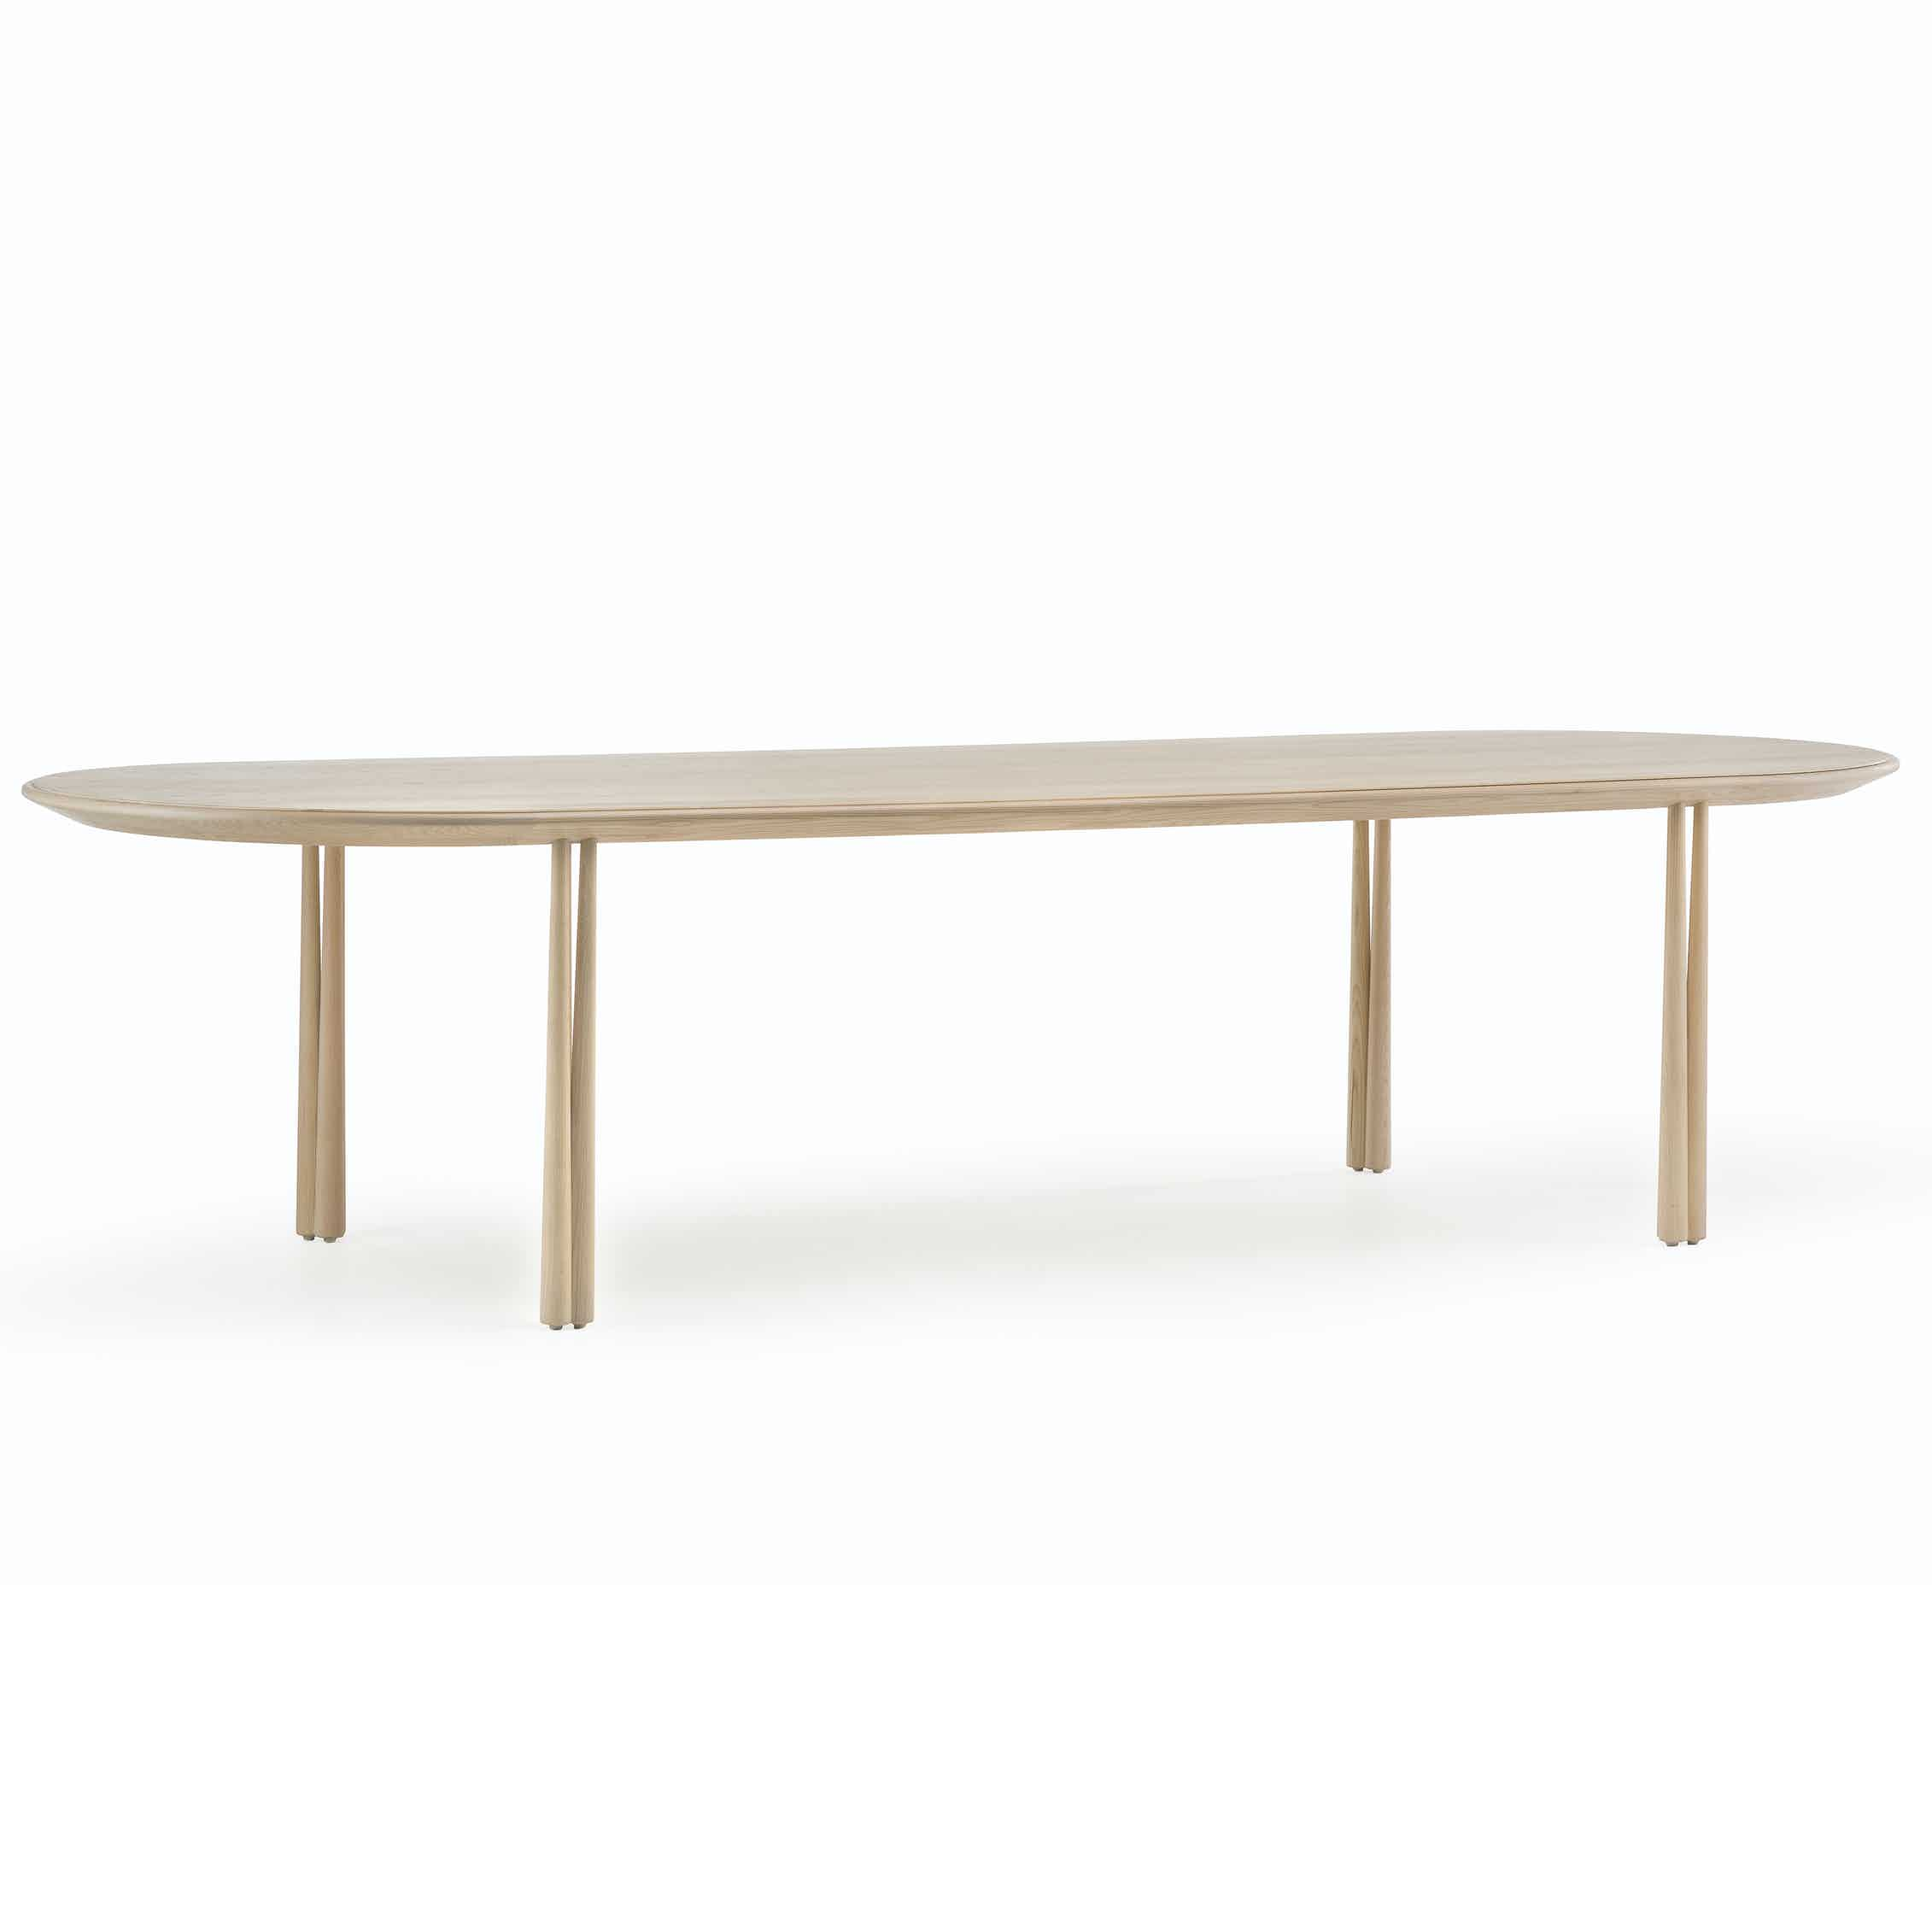 De La Espada Jason Miller Elliot Dining Table Thumbnail Haute Living